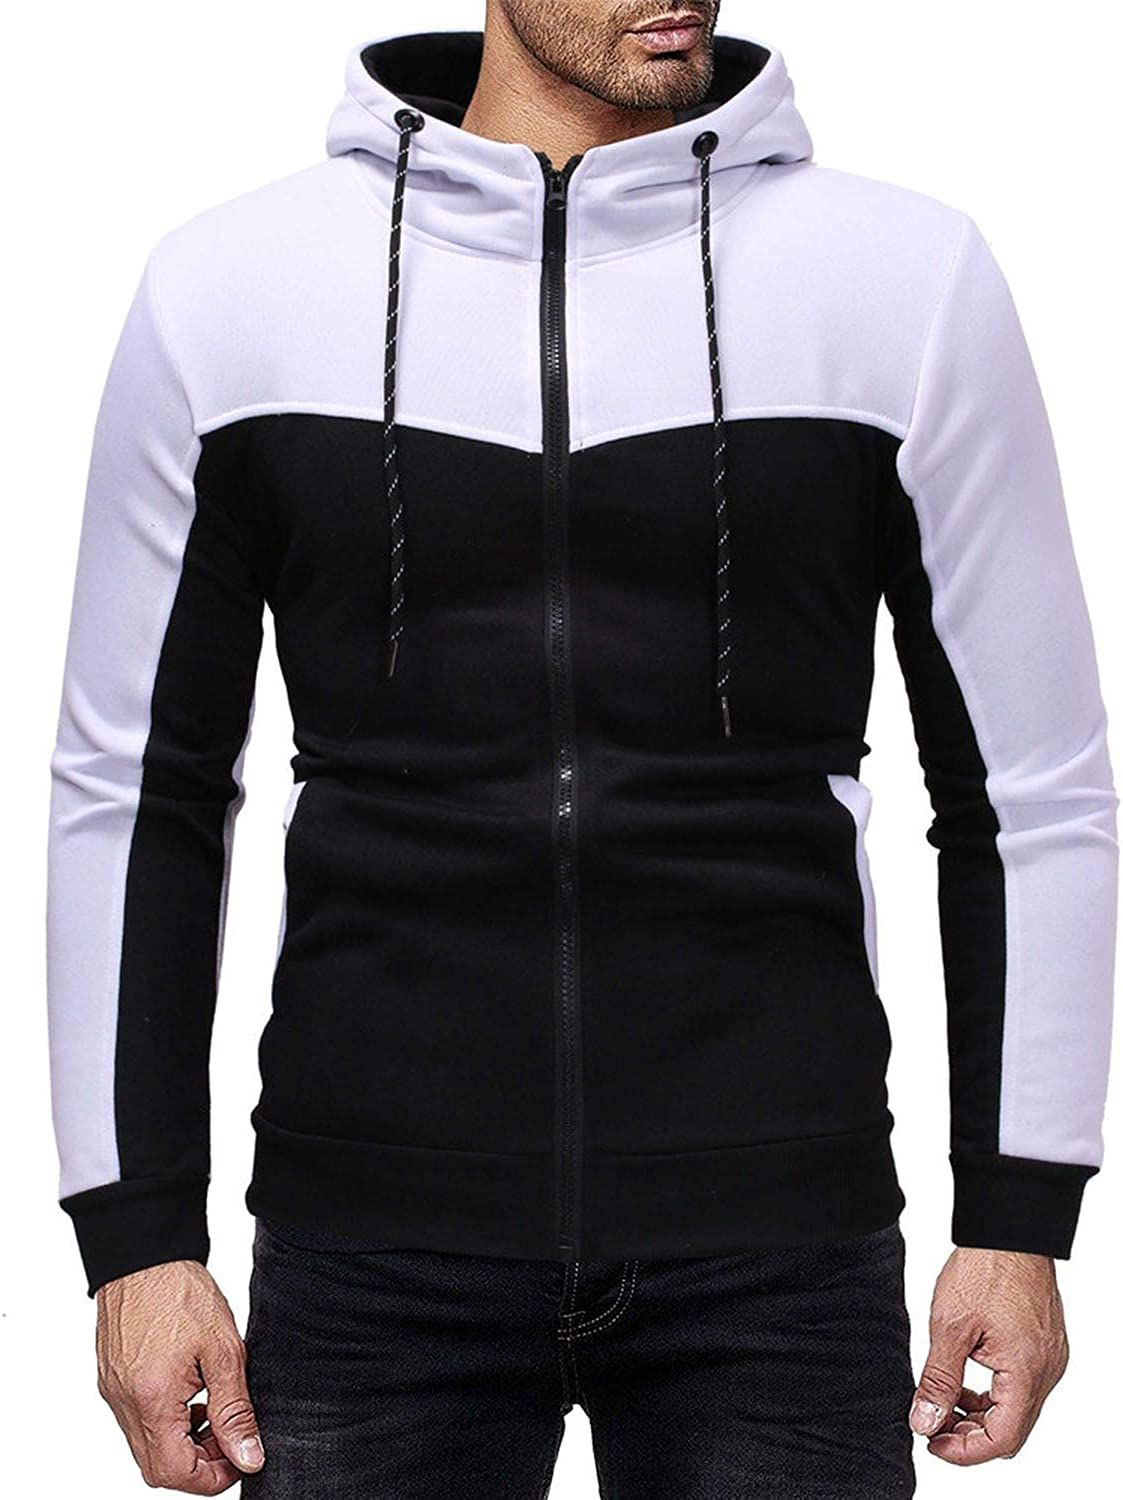 Mens Outdoor Casual Slim Fit Sweatshirt Hoodies Top,White Top,L